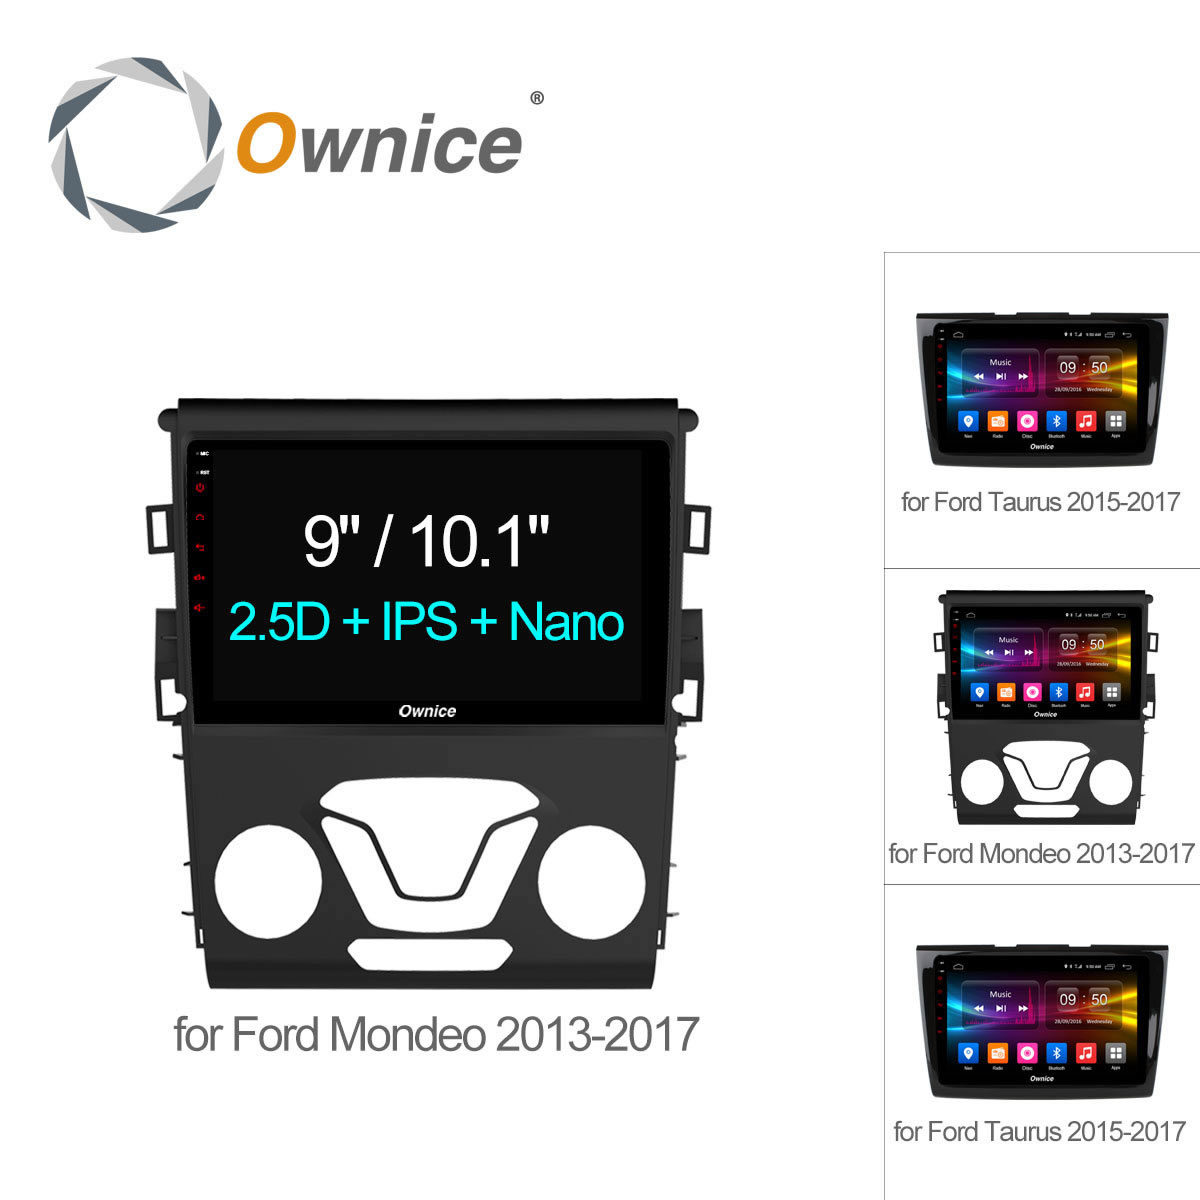 Ownice C500+ Android 6.0 Octa Core HD Car radio player GPS navi dvd for Ford Mondeo Taurus 2013 2014 2015 2016 2017 4G LTE 32GB